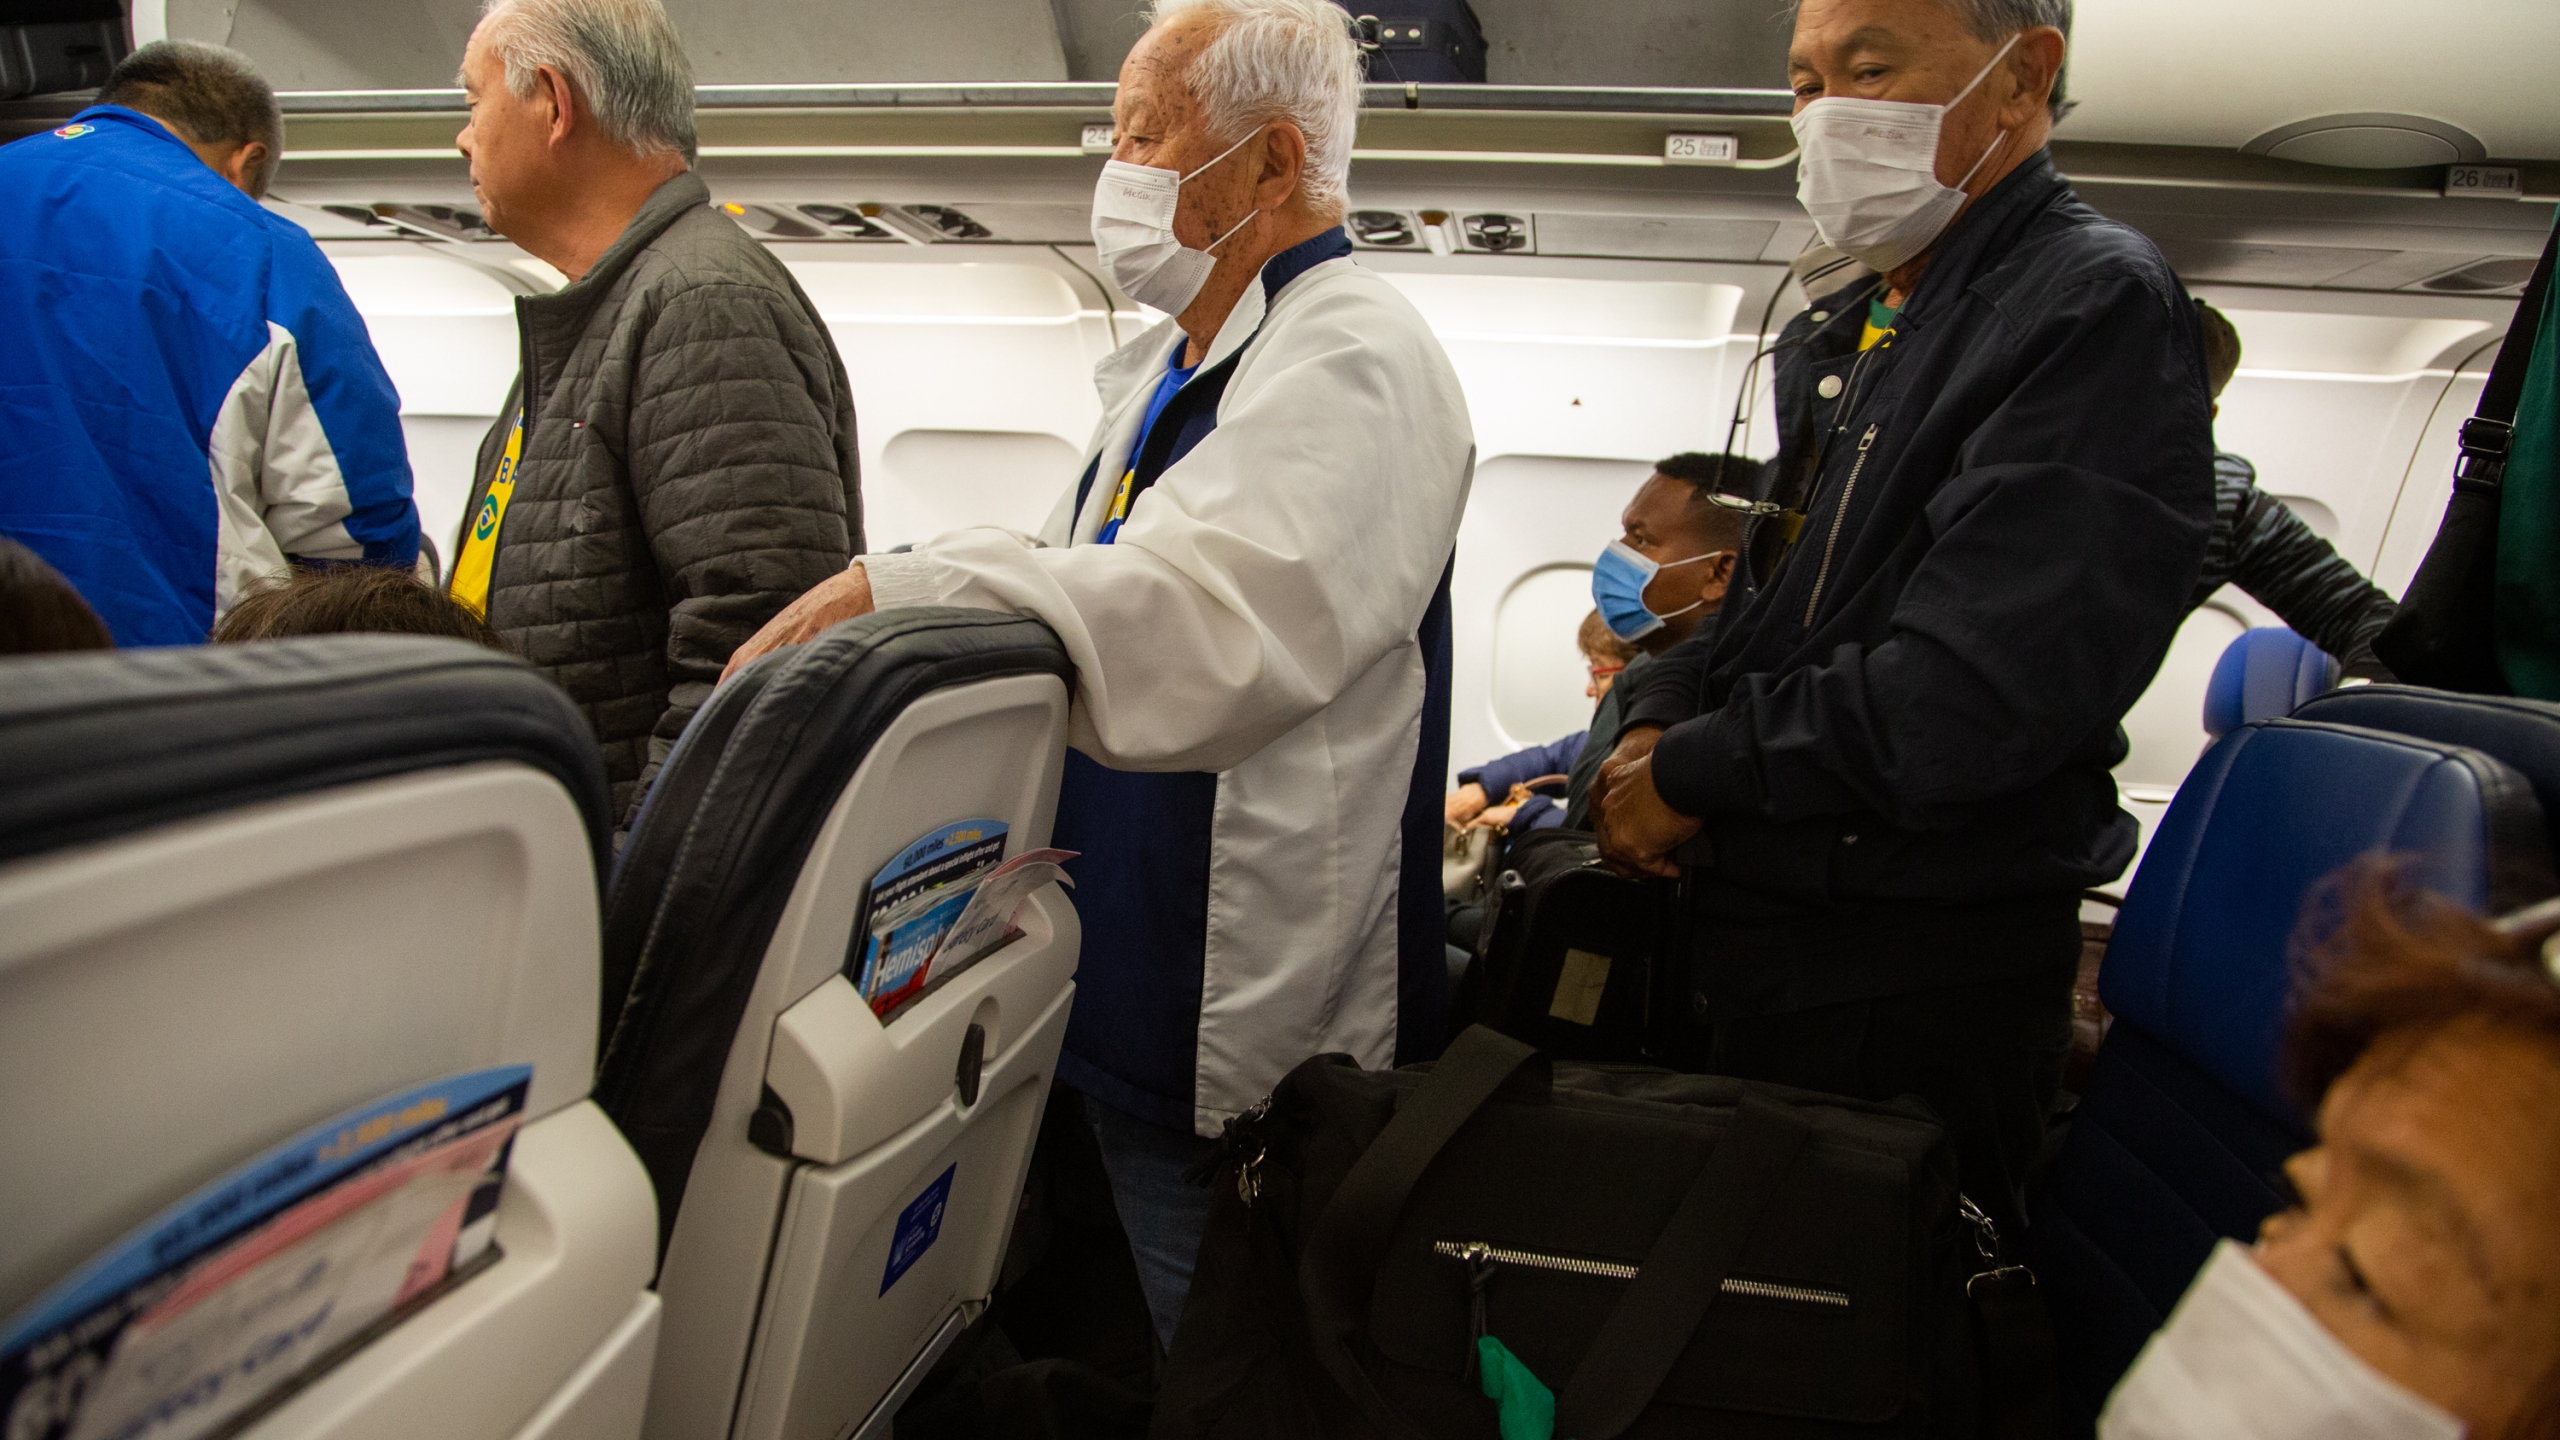 Passengers wear protective face masks in a airplane after arrival in Houston International Airport on March 14, 2020 in Houston, Texas (Carol Coelho/Getty Images)